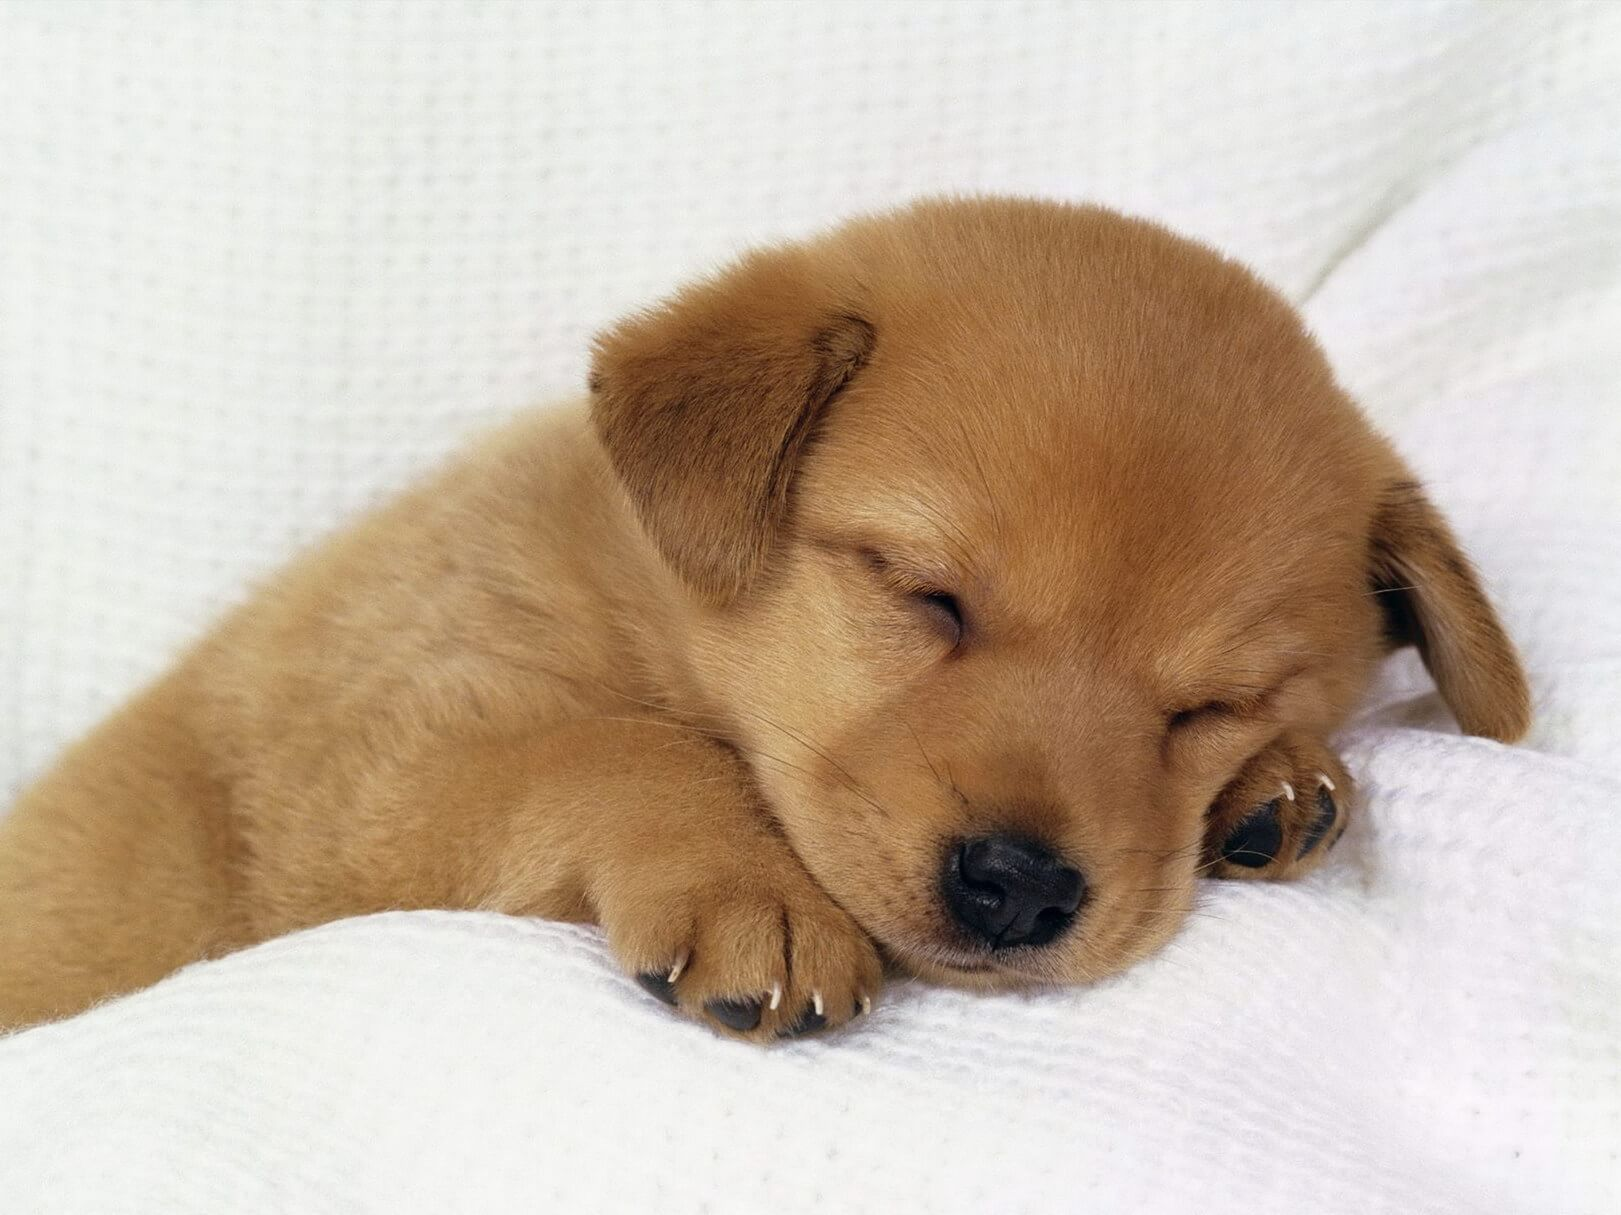 Winter Fatigue: Your Pets Spend A Lot Of Time Sleeping